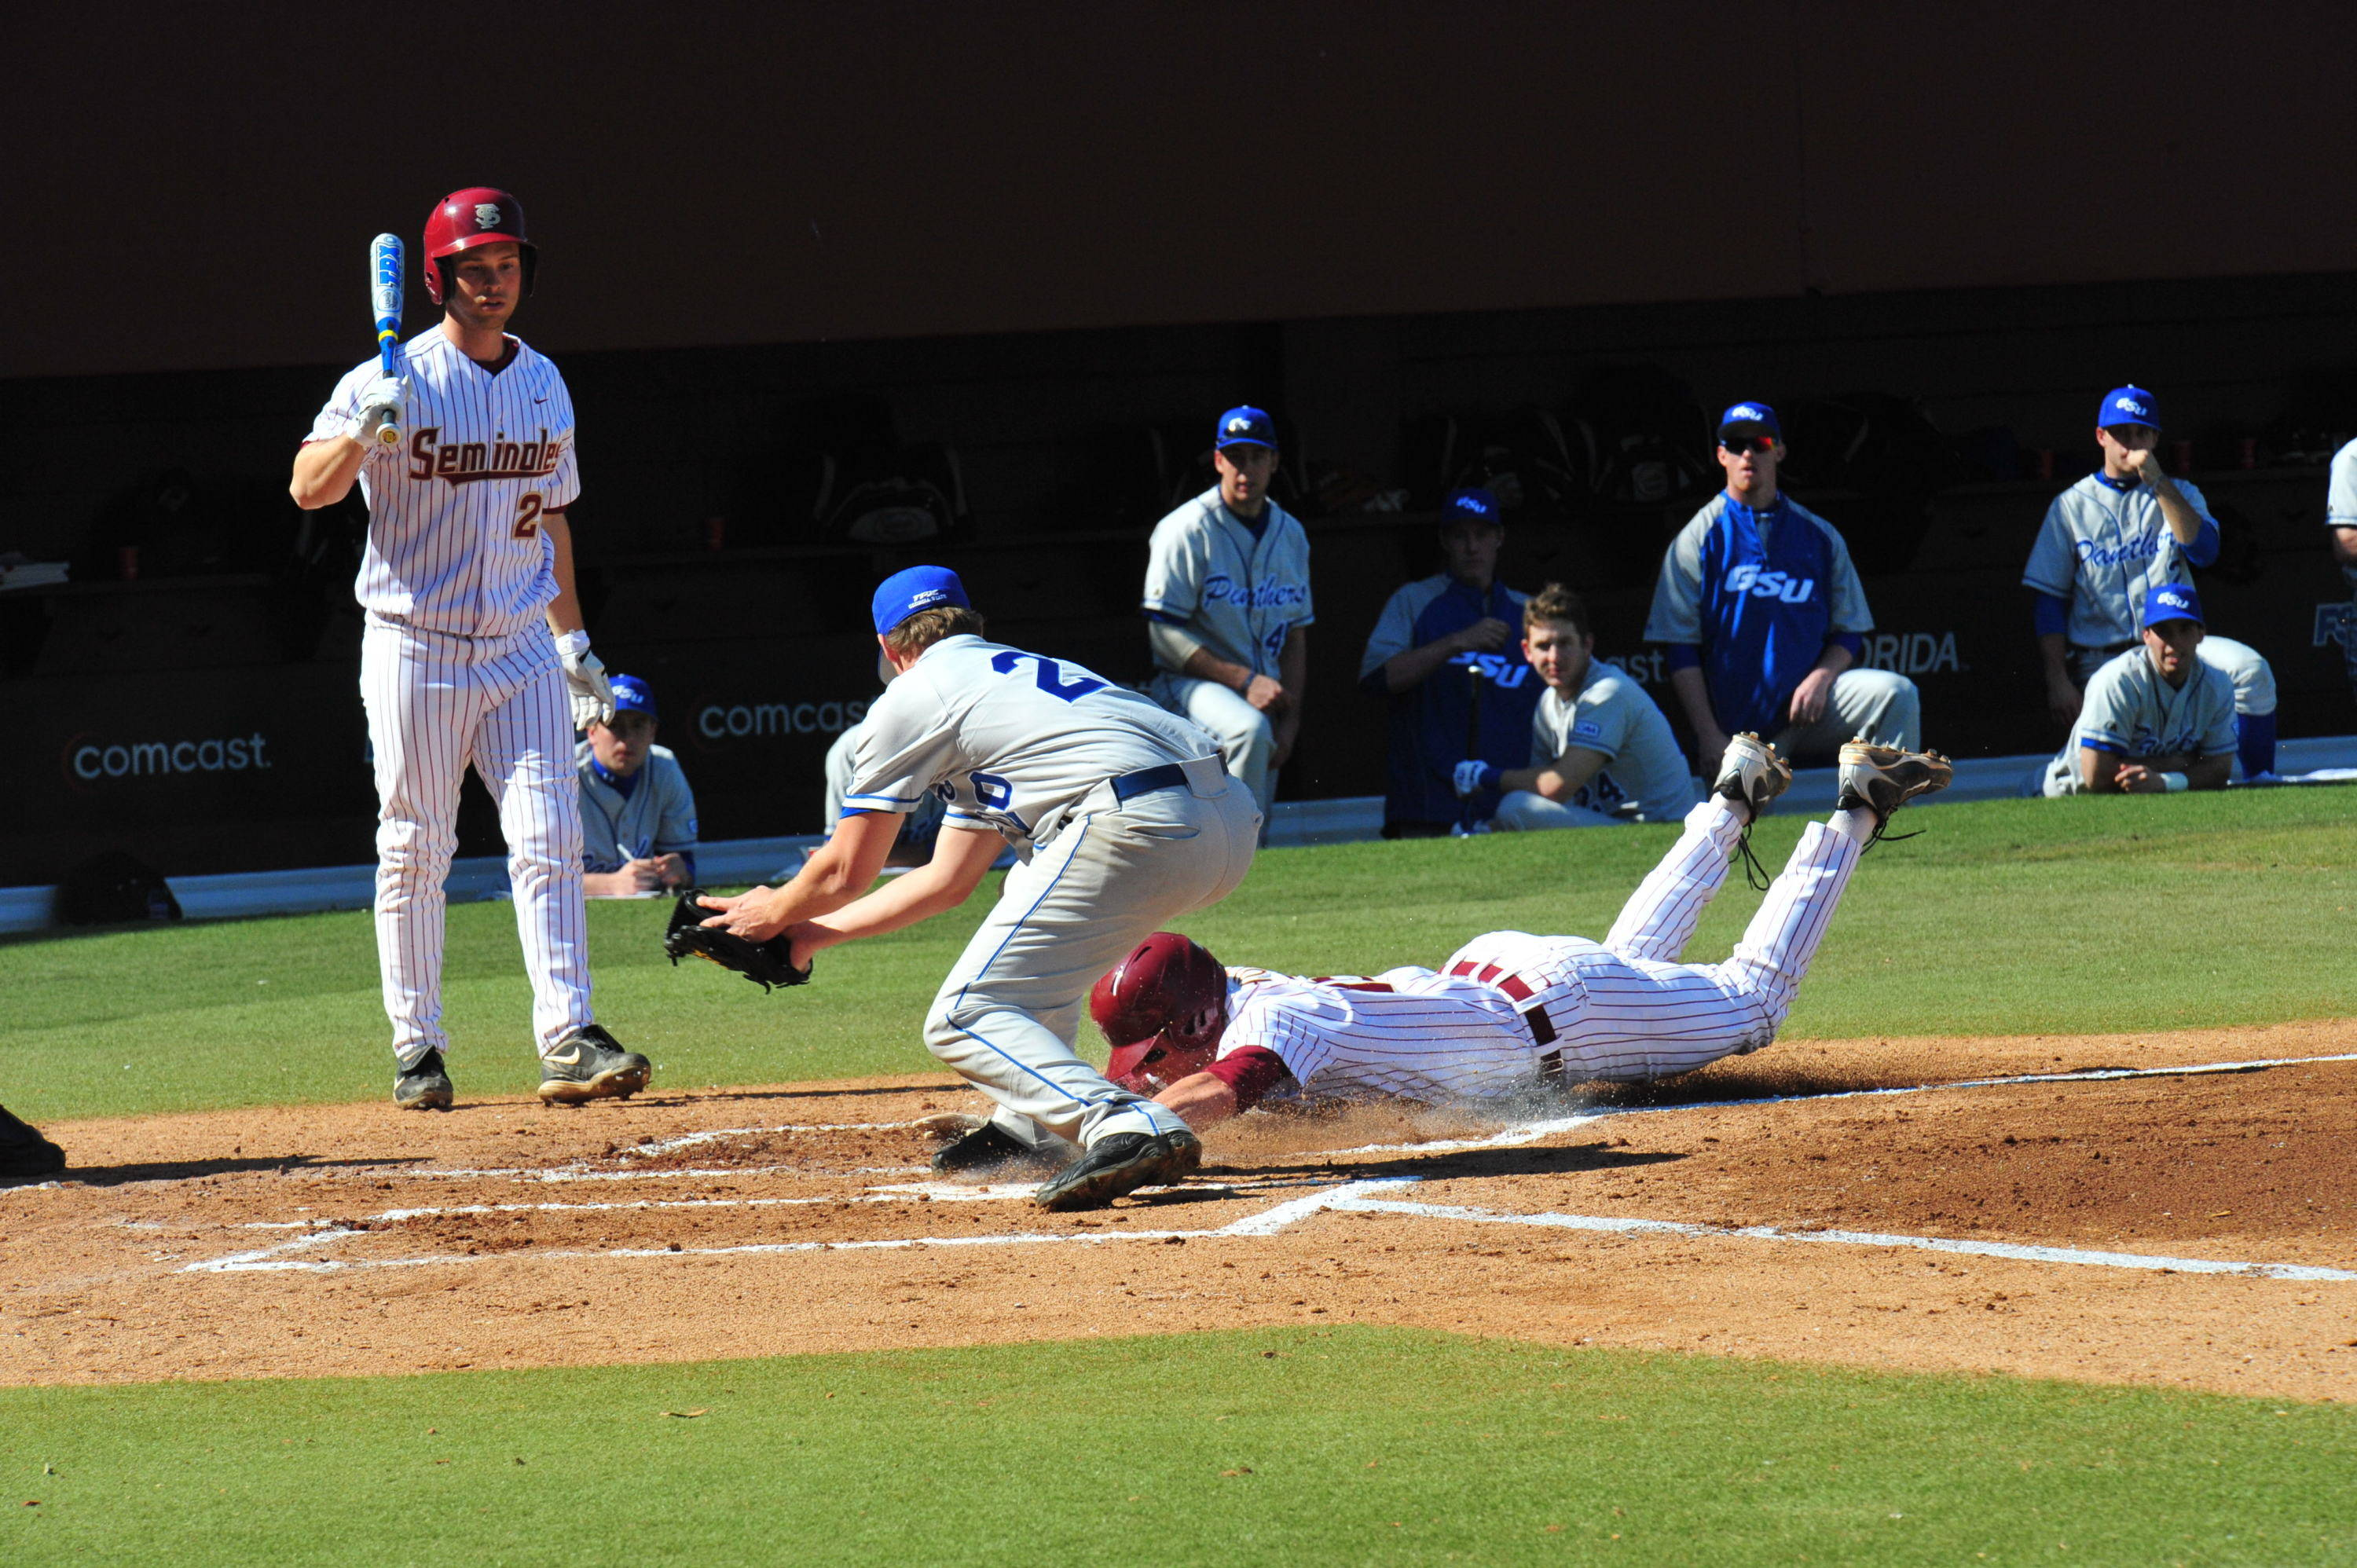 Tyler Holt slides in safely at home following a Georgia State passed ball.